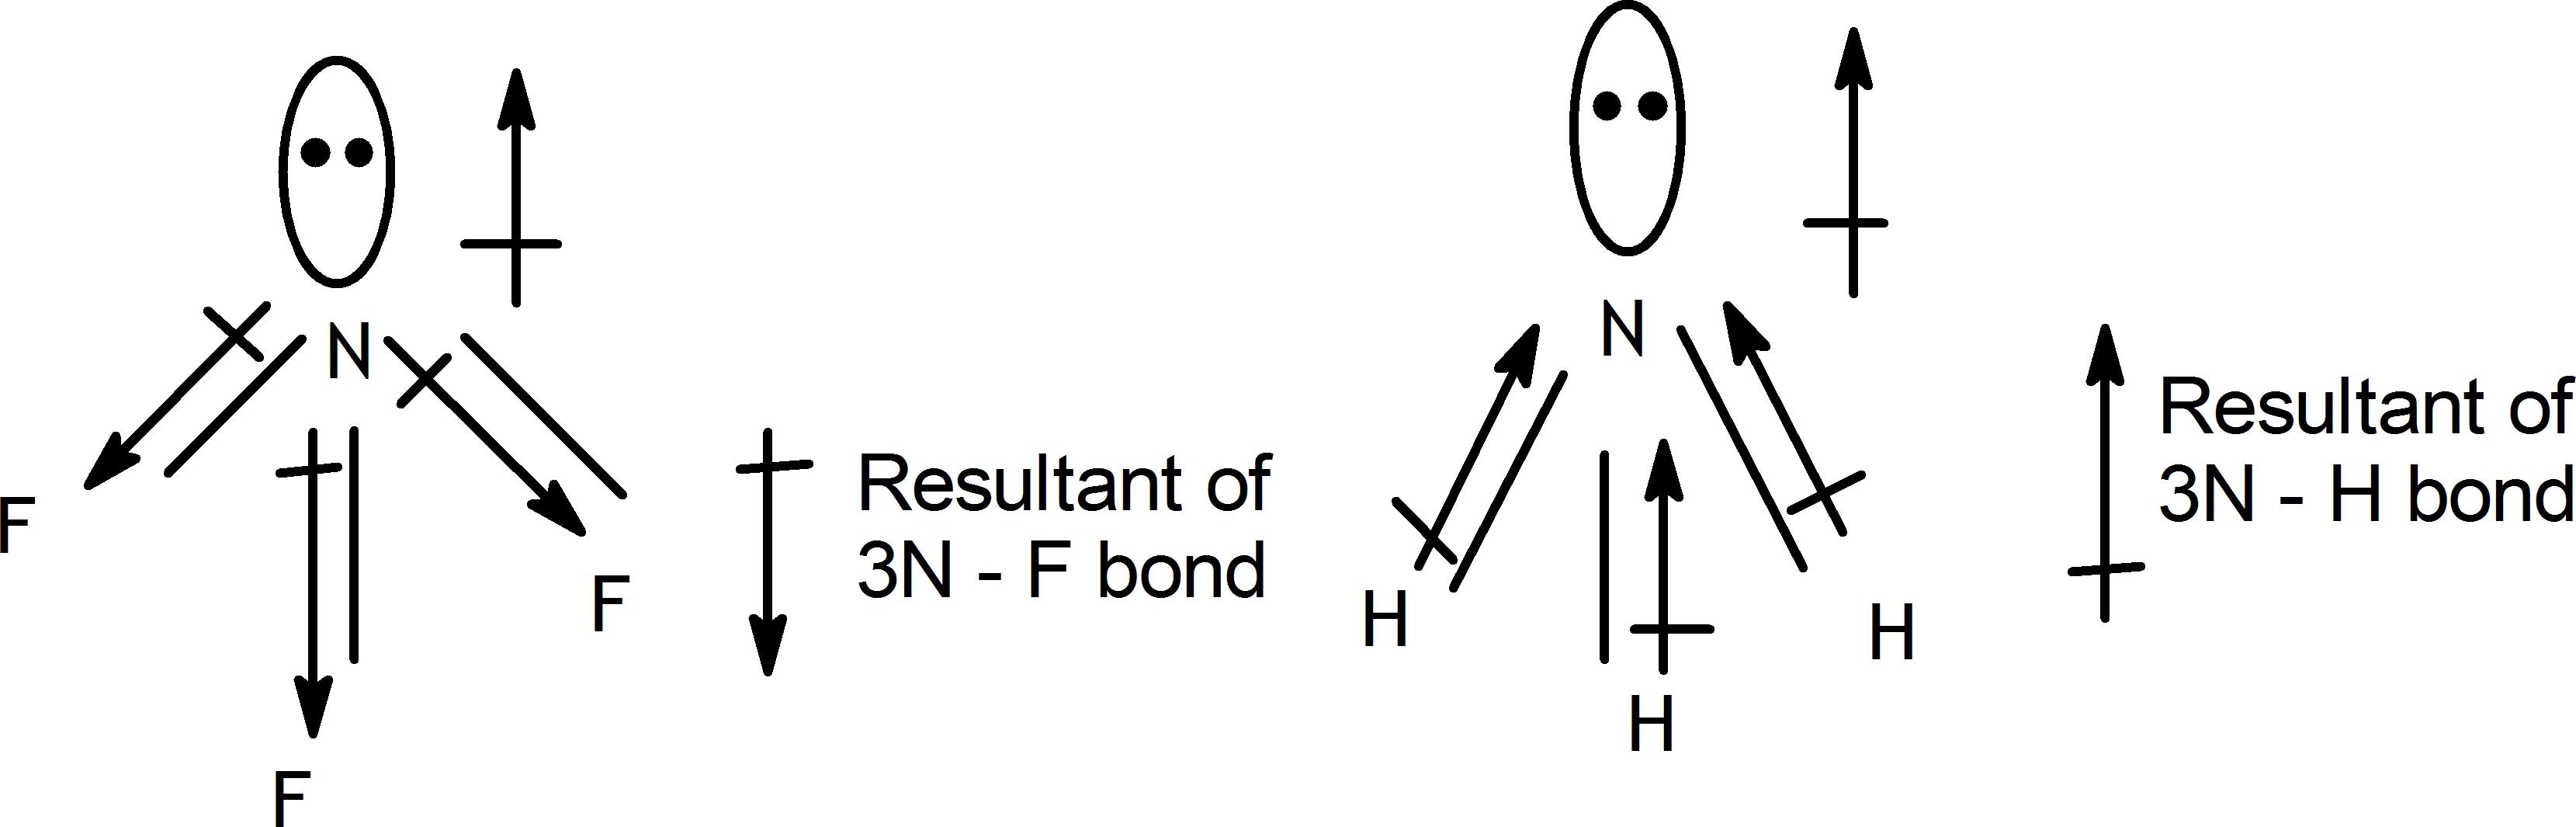 Image showing NF3 and NH3 bonds.